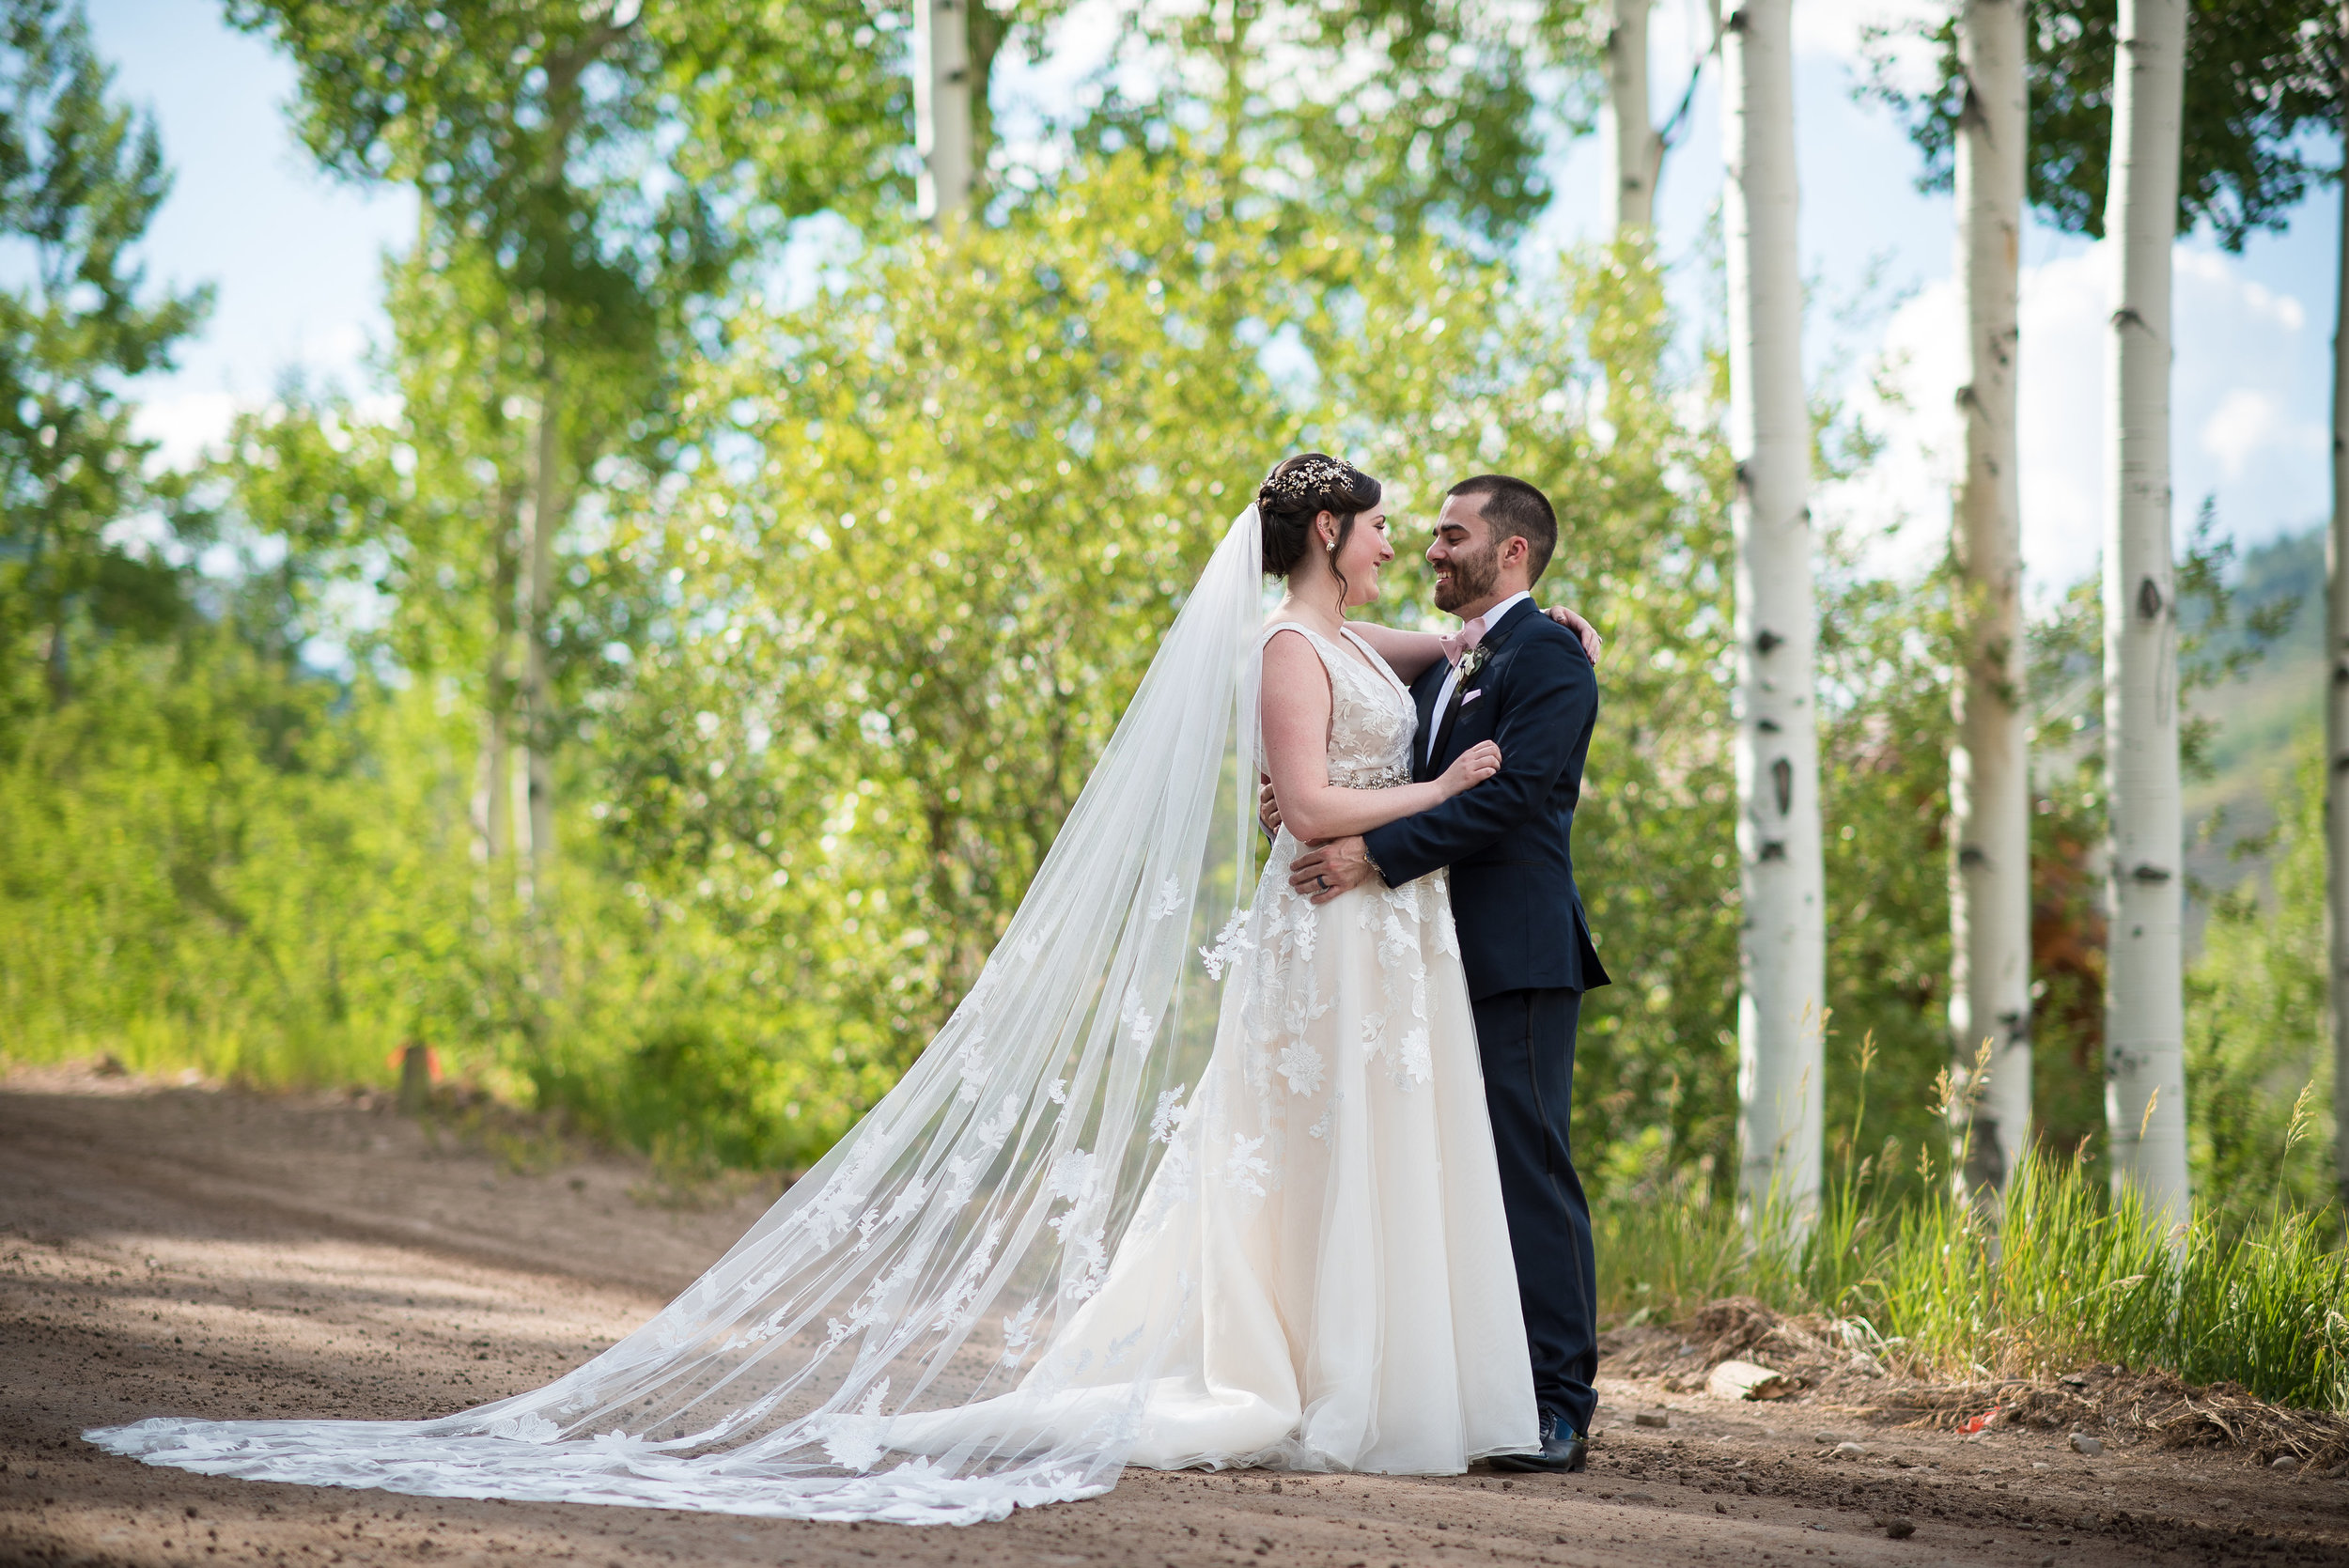 Charlotte and Ryan | Vail, CO | August 2018 |  Nate and Jenny Photography